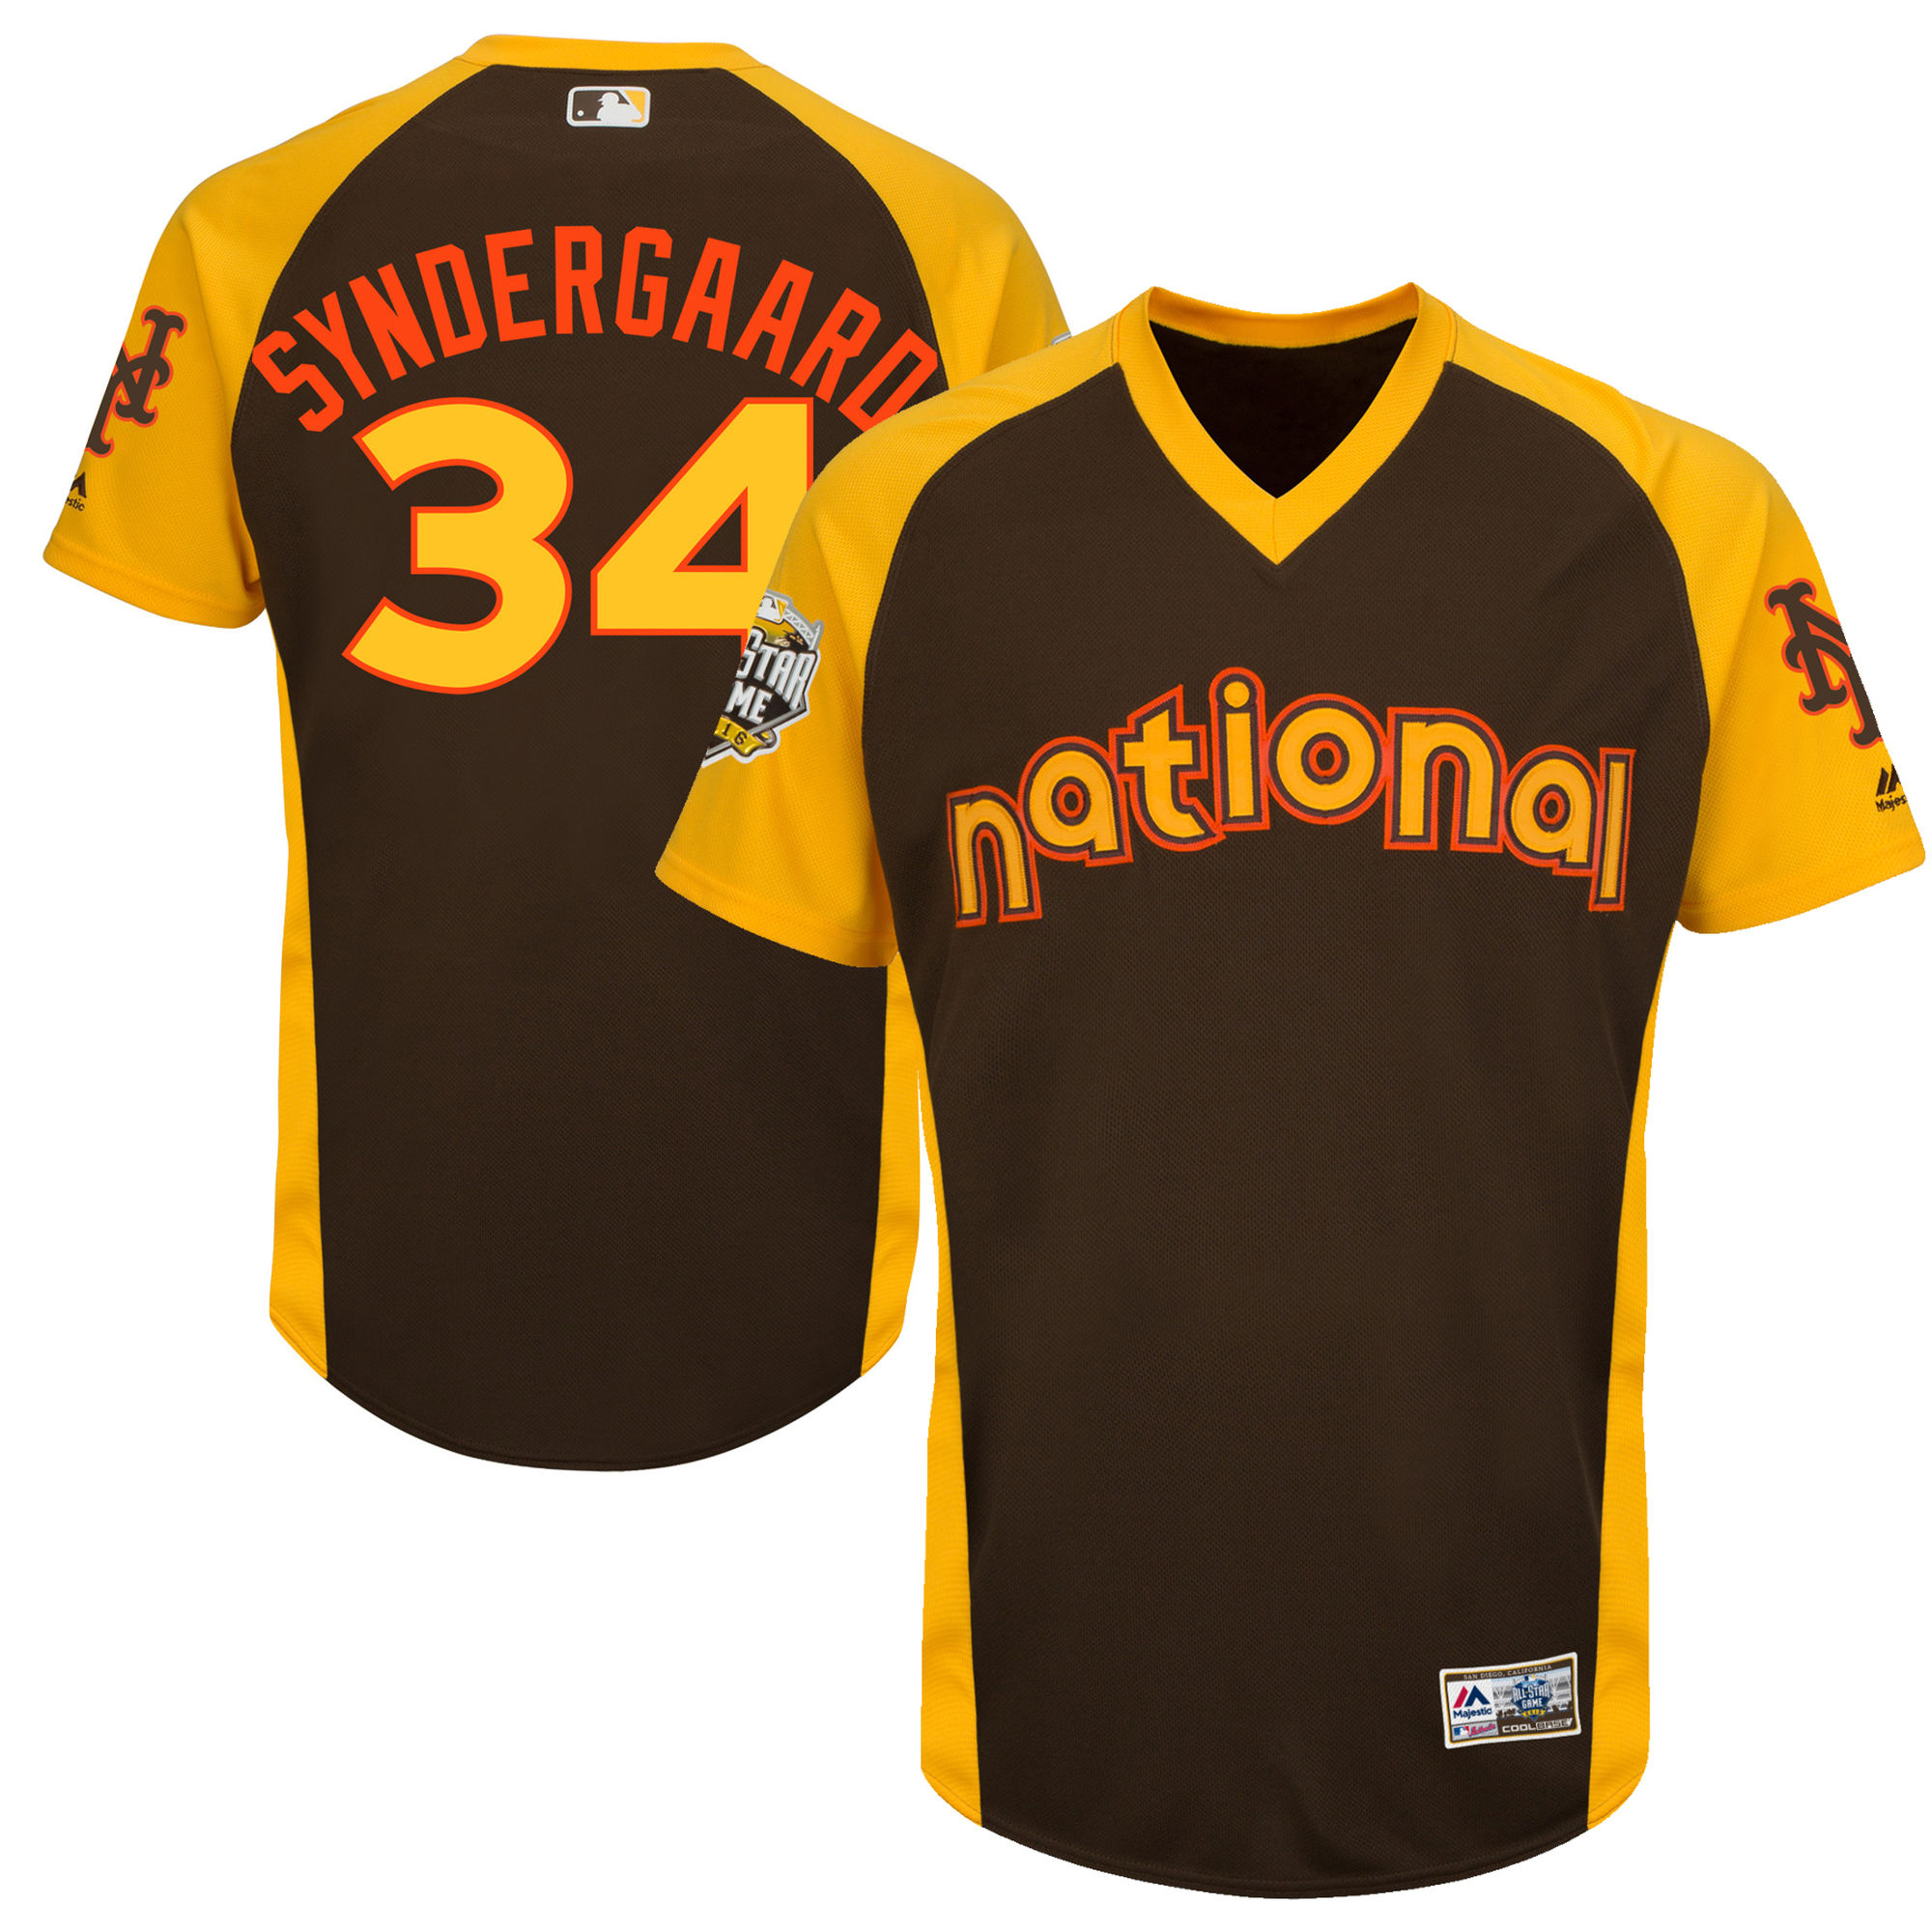 Mets 34 Noah Syndergaard Brown Youth 2016 All-Star Game Cool Base Batting Practice Player Jersey